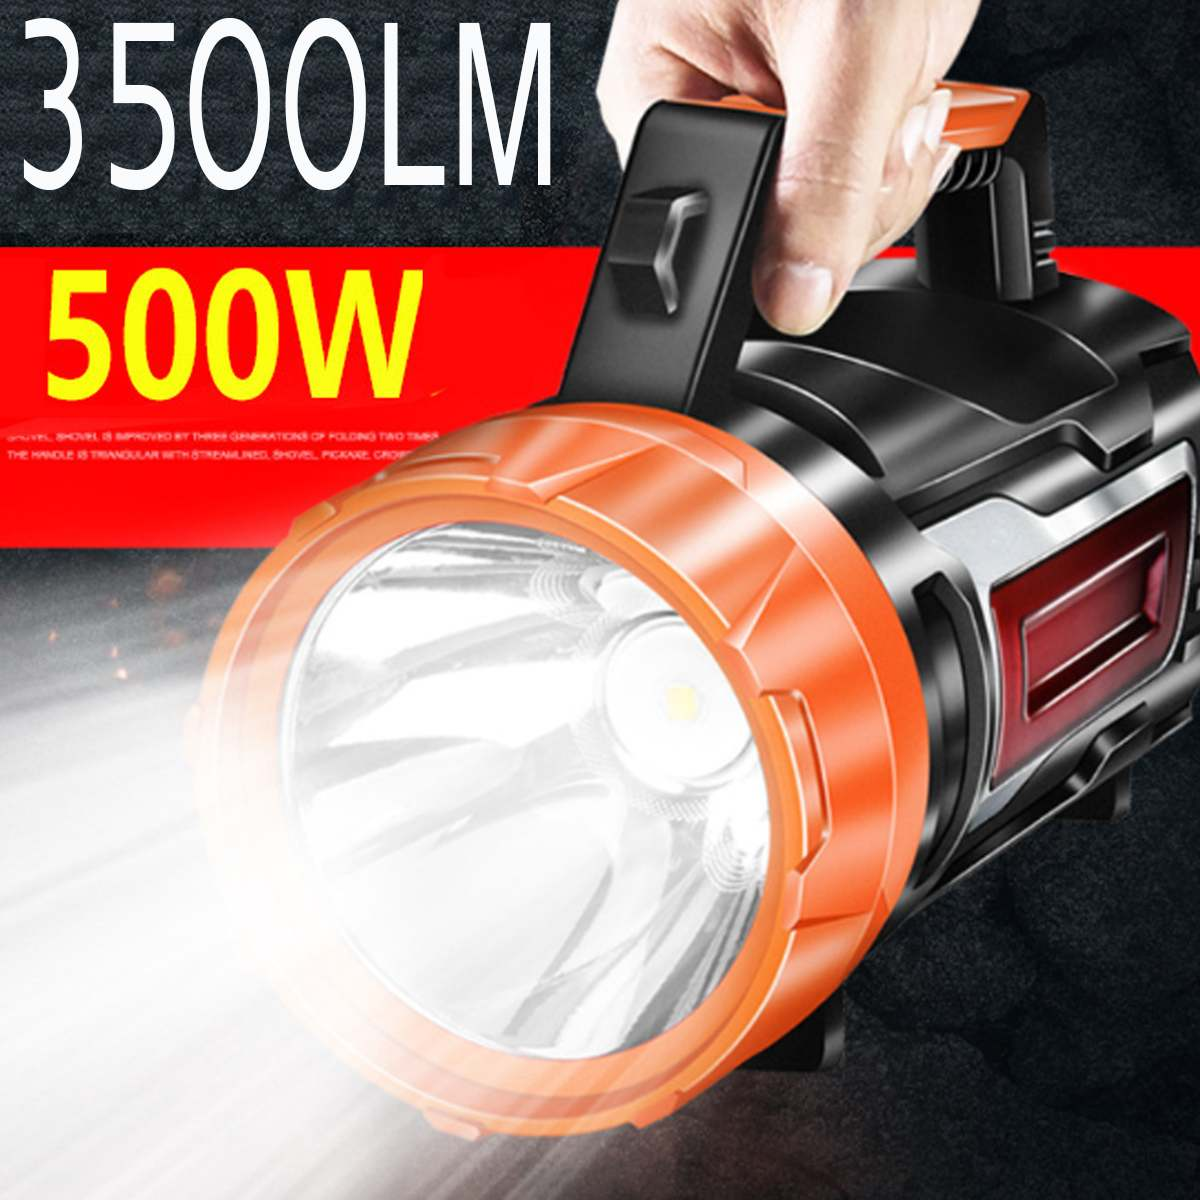 500W Handheld Spotlight Portable USB Rechargeable LED Searchlight Lantern Flashlight Waterproof Spot Lamp For Camping Hunting